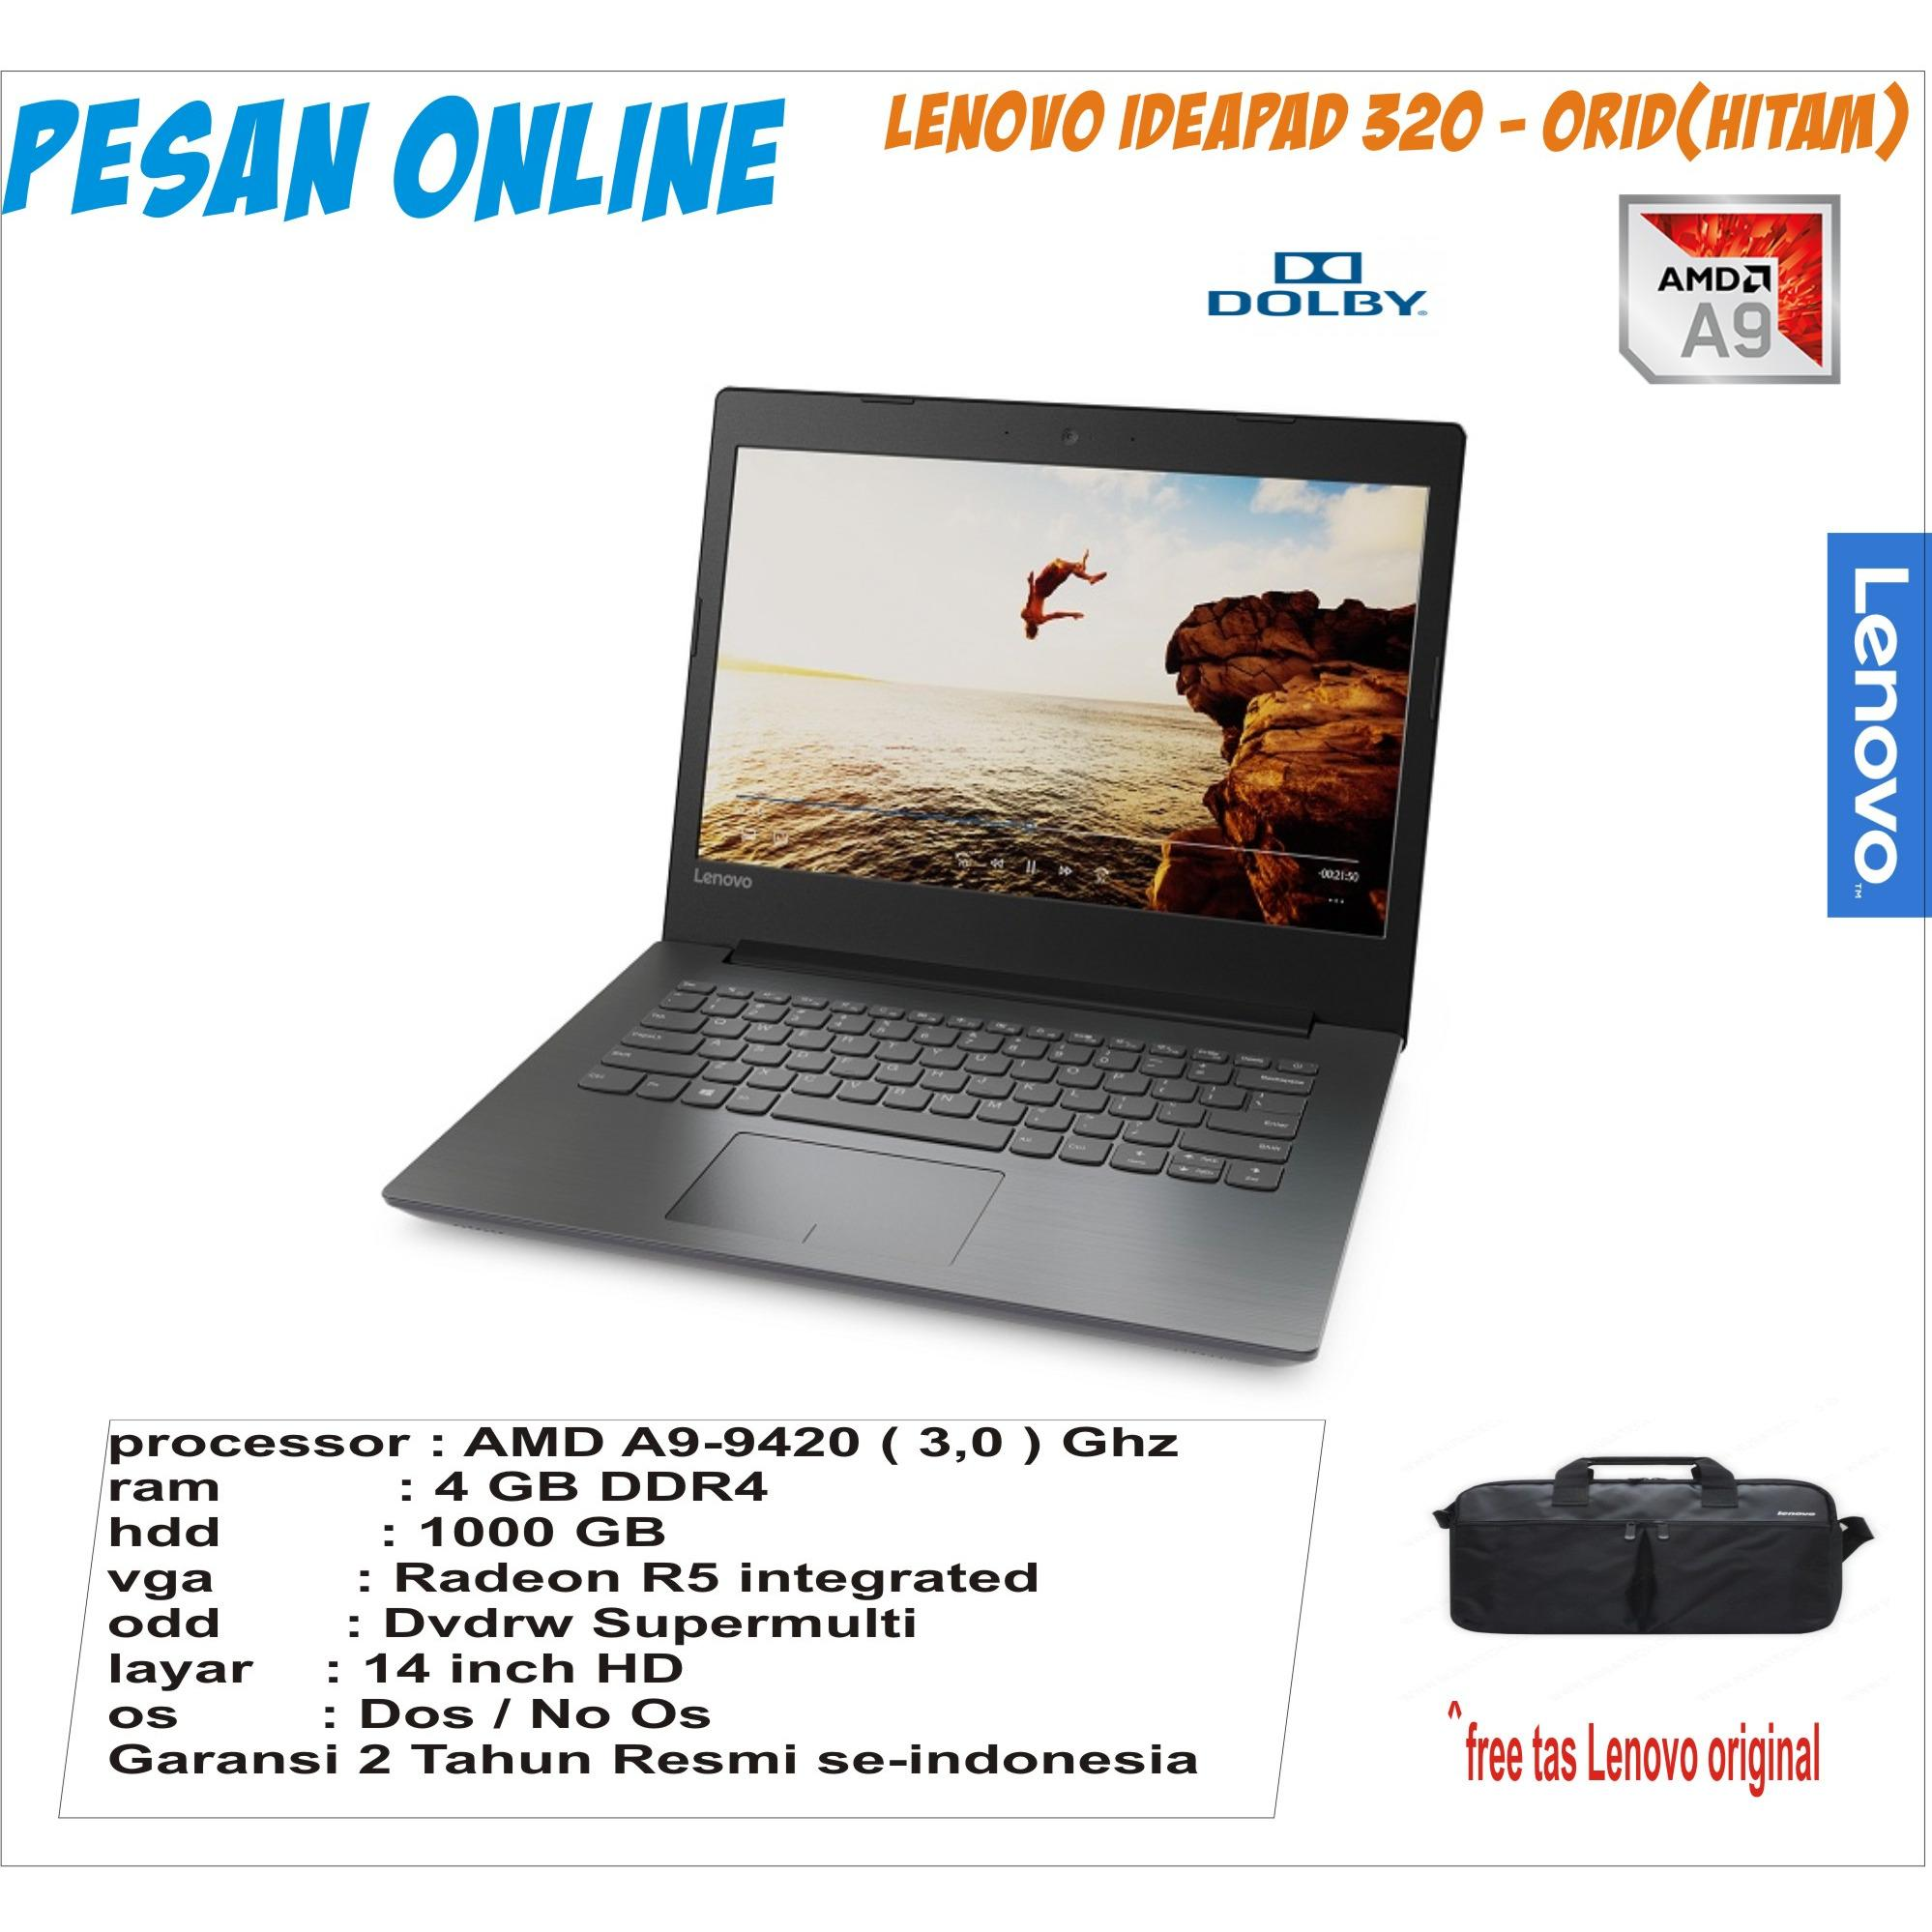 Ideapad 320 - 0RID - 14AST/AMD A9-9420 SPEED 3.0 GHZ/ 4 GB RAM DDR4/1 TB HDD/14